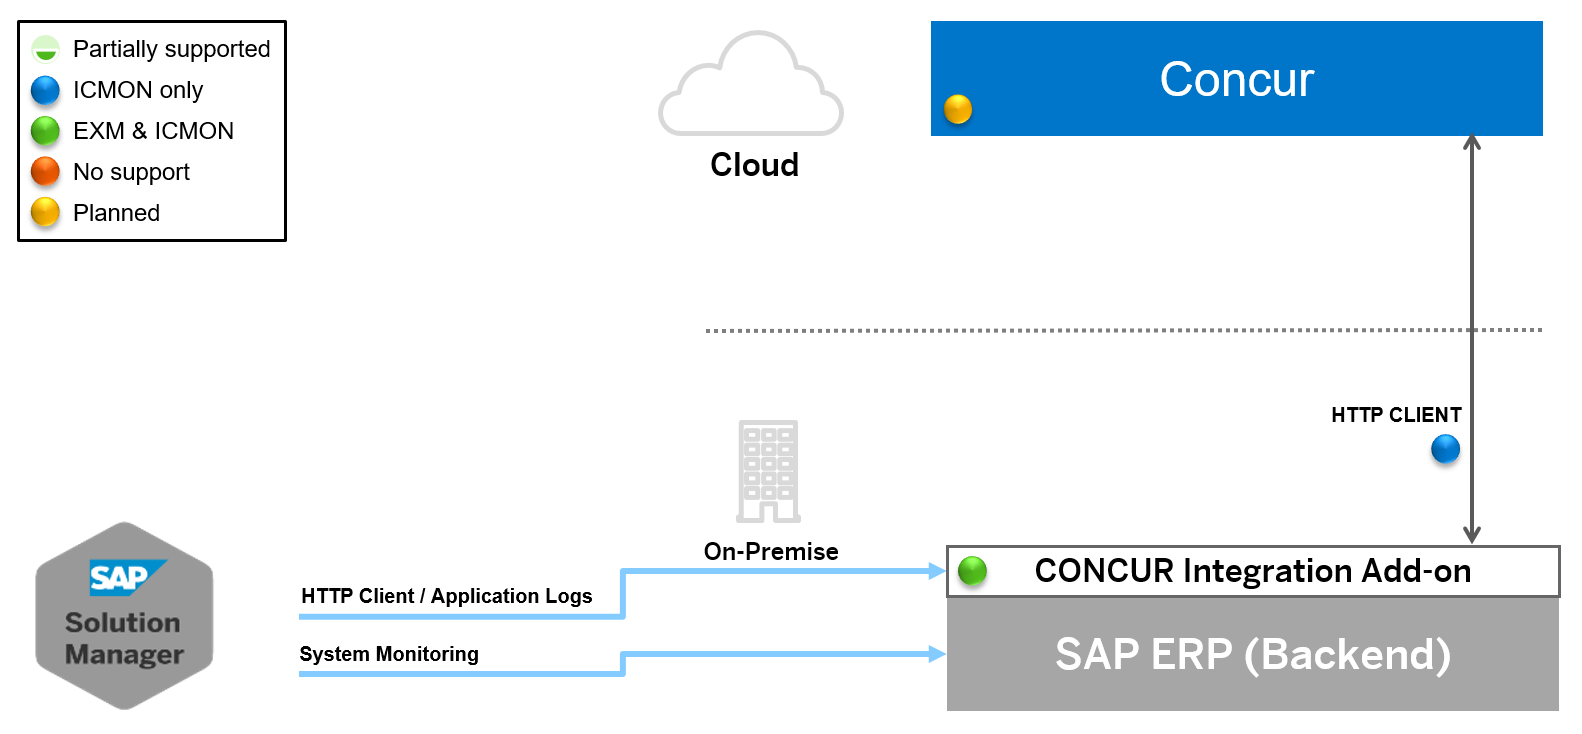 Sap Cloud Operations Supported Use Cases Technical